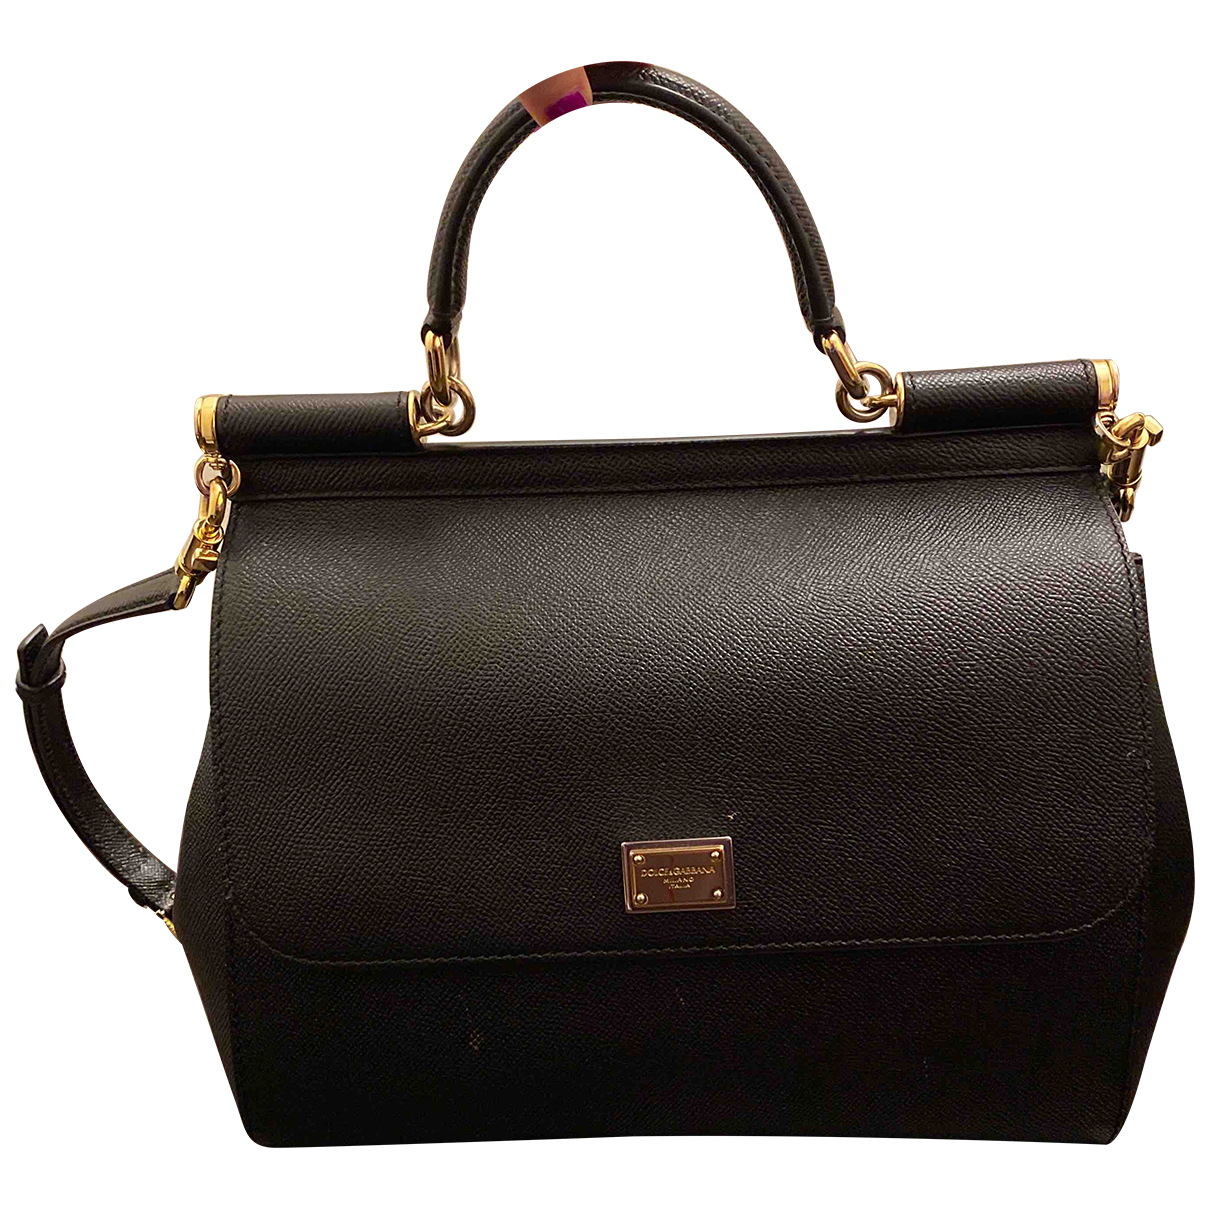 Dolce & Gabbana Sicily Black Leather handbag for Women N